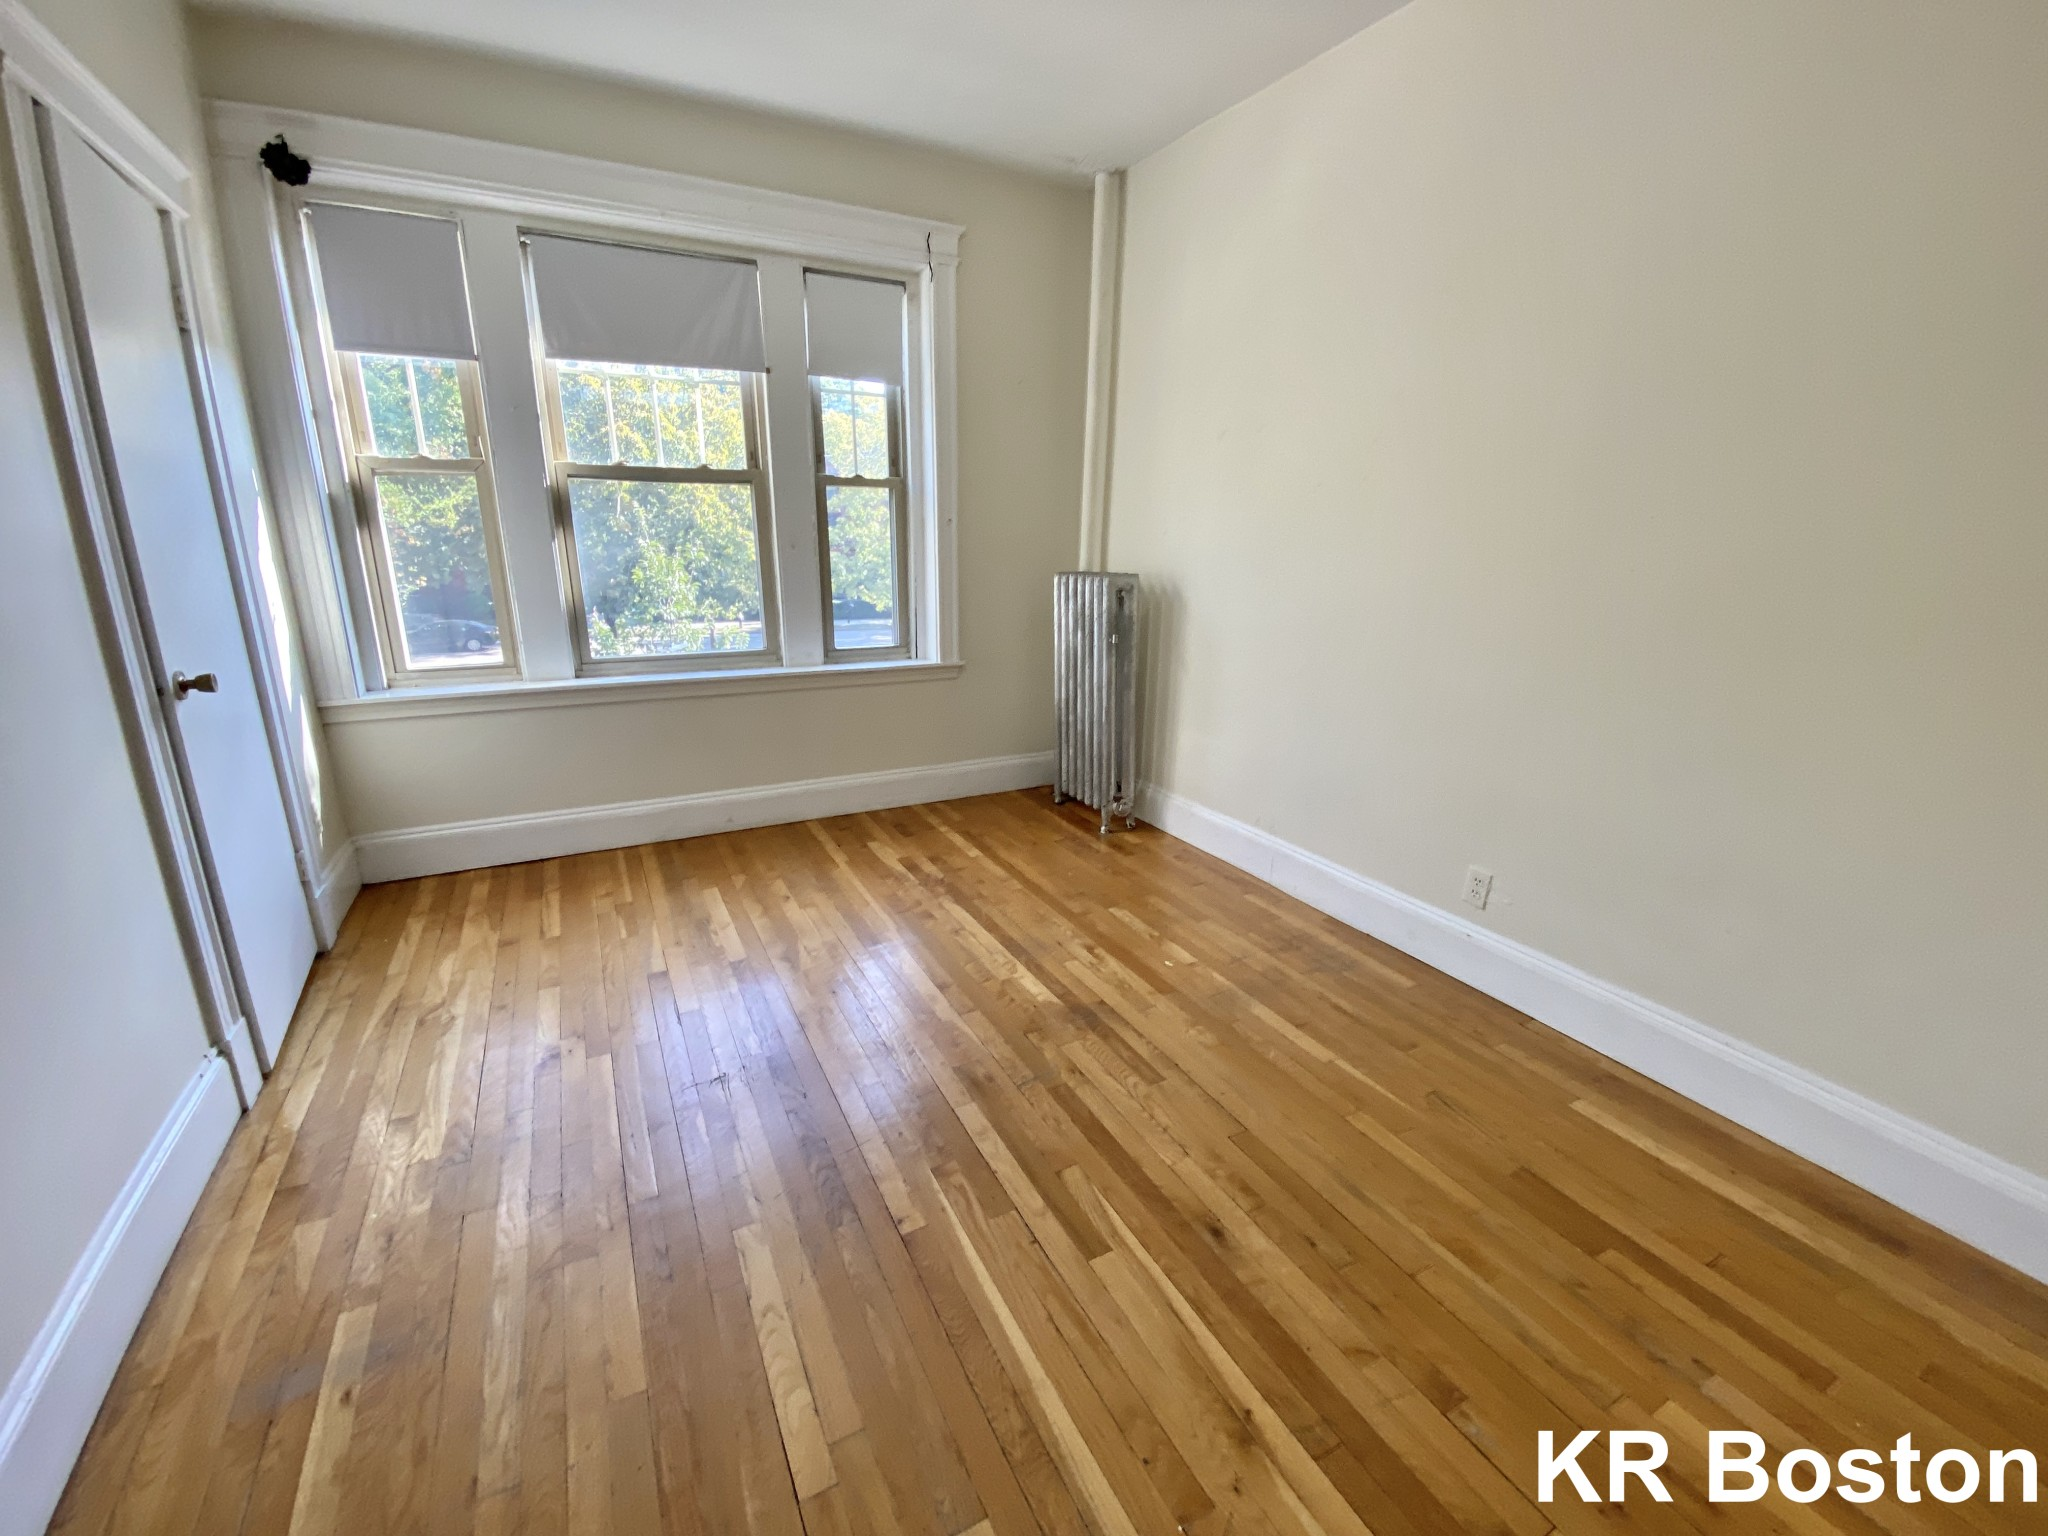 2 Beds, 1 Bath apartment in Brookline for $2,075